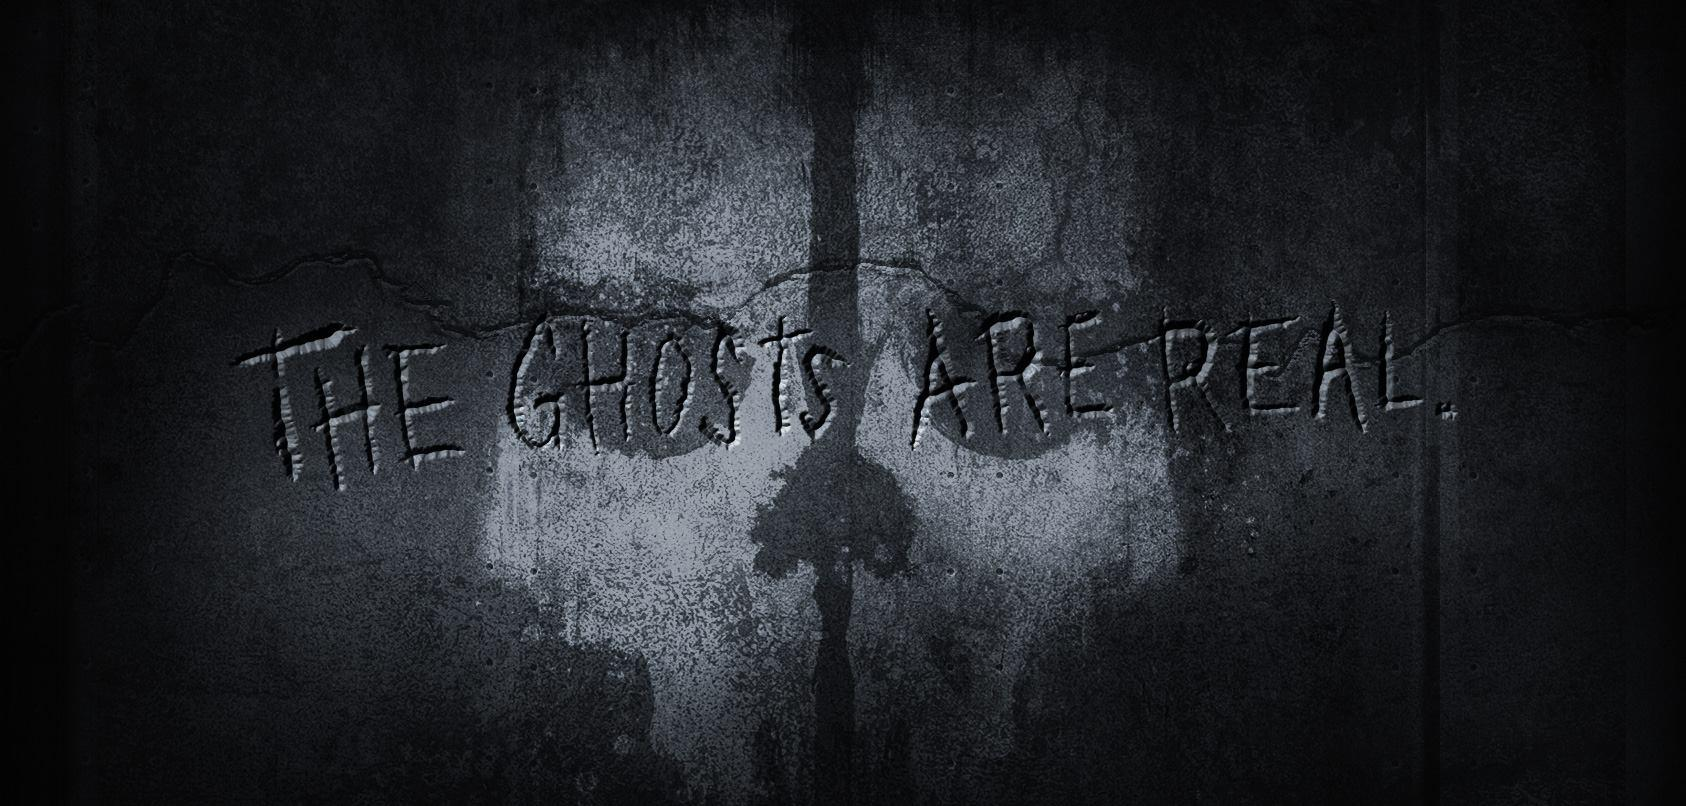 Call Of Duty Ghost 2017 Wallpapers Wallpaper Cave